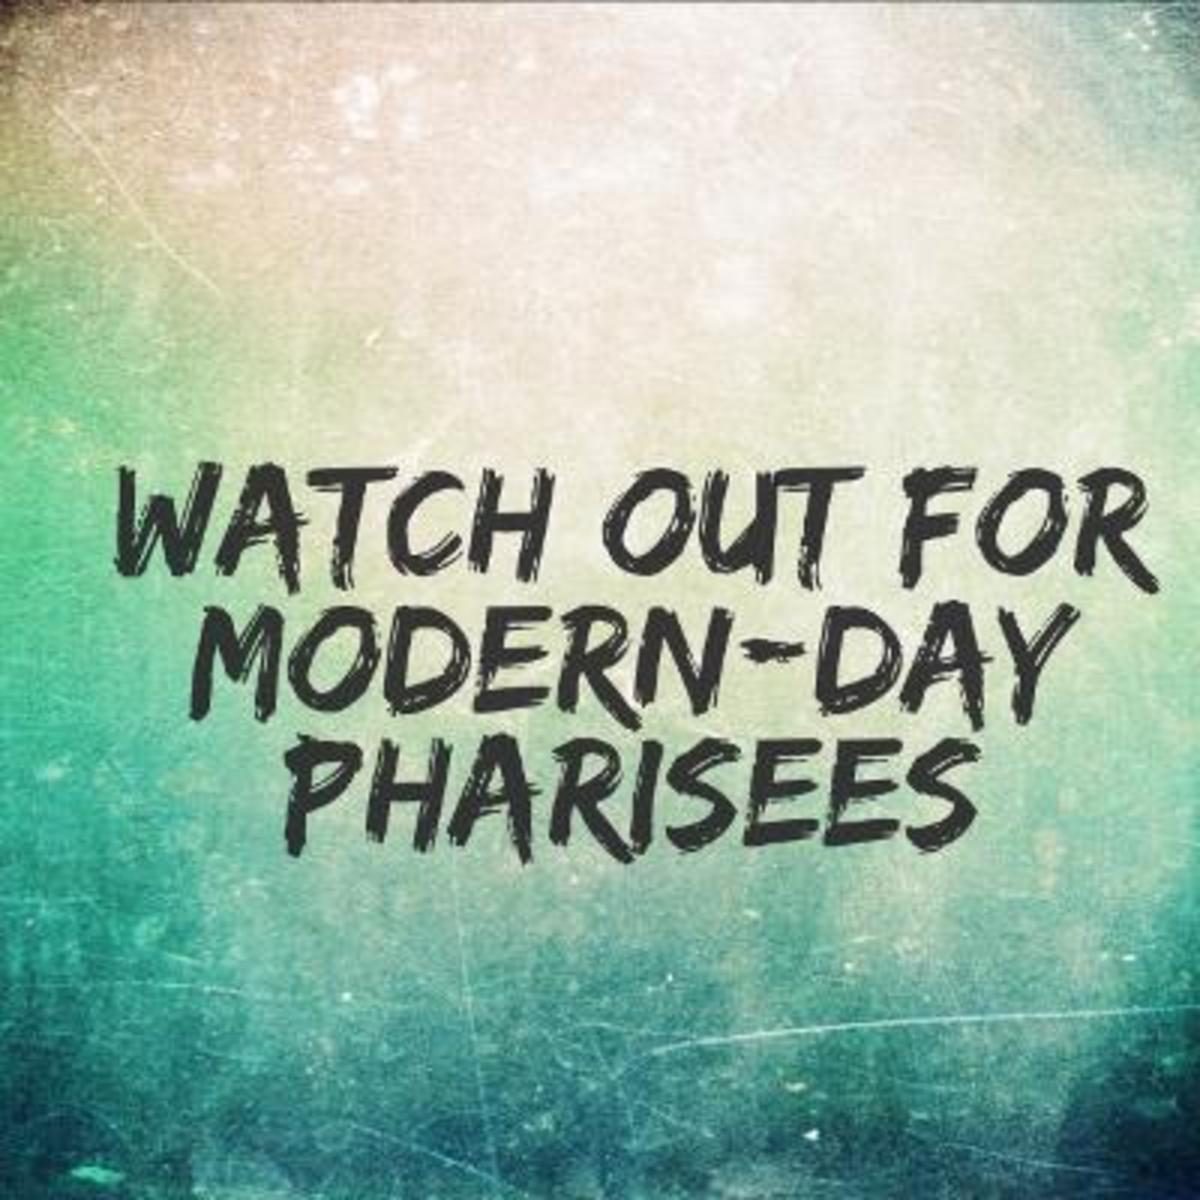 modern-day-pharisees-and-how-to-deal-with-them